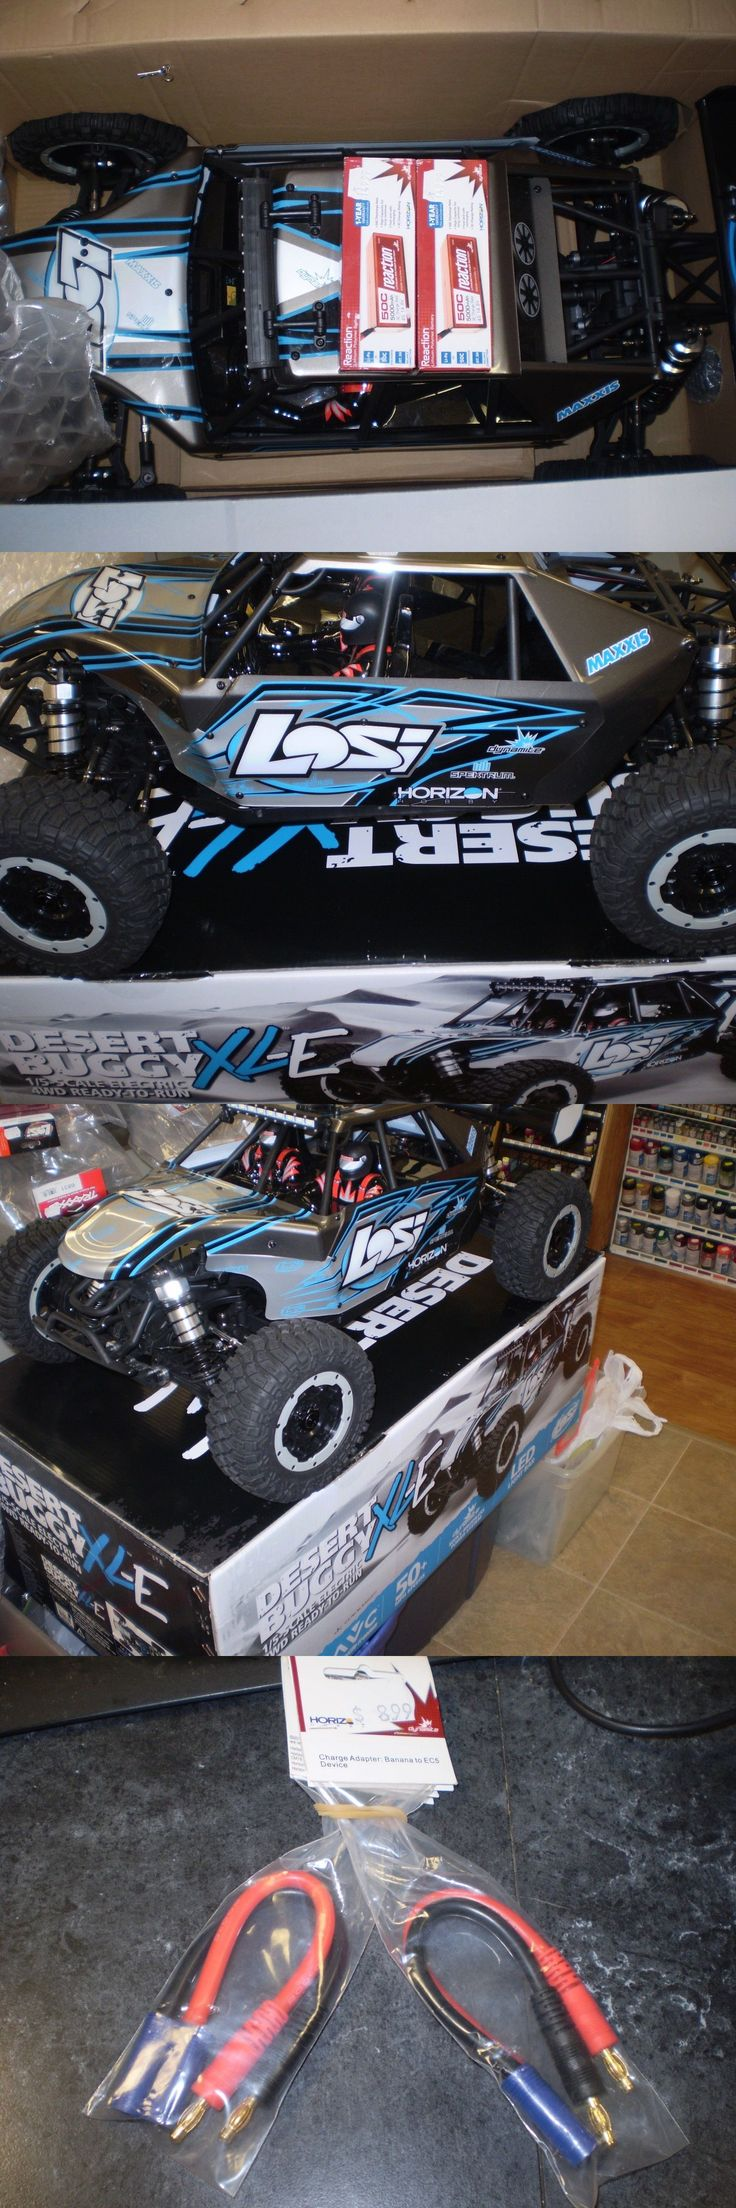 RC Tools and Sets 68407: Team Losi Desert Buggy Xl-E Electric Grey Blue Rtr 2.4 Avc 1 5 4Wd W 2 Lipo S -> BUY IT NOW ONLY: $1350 on eBay!